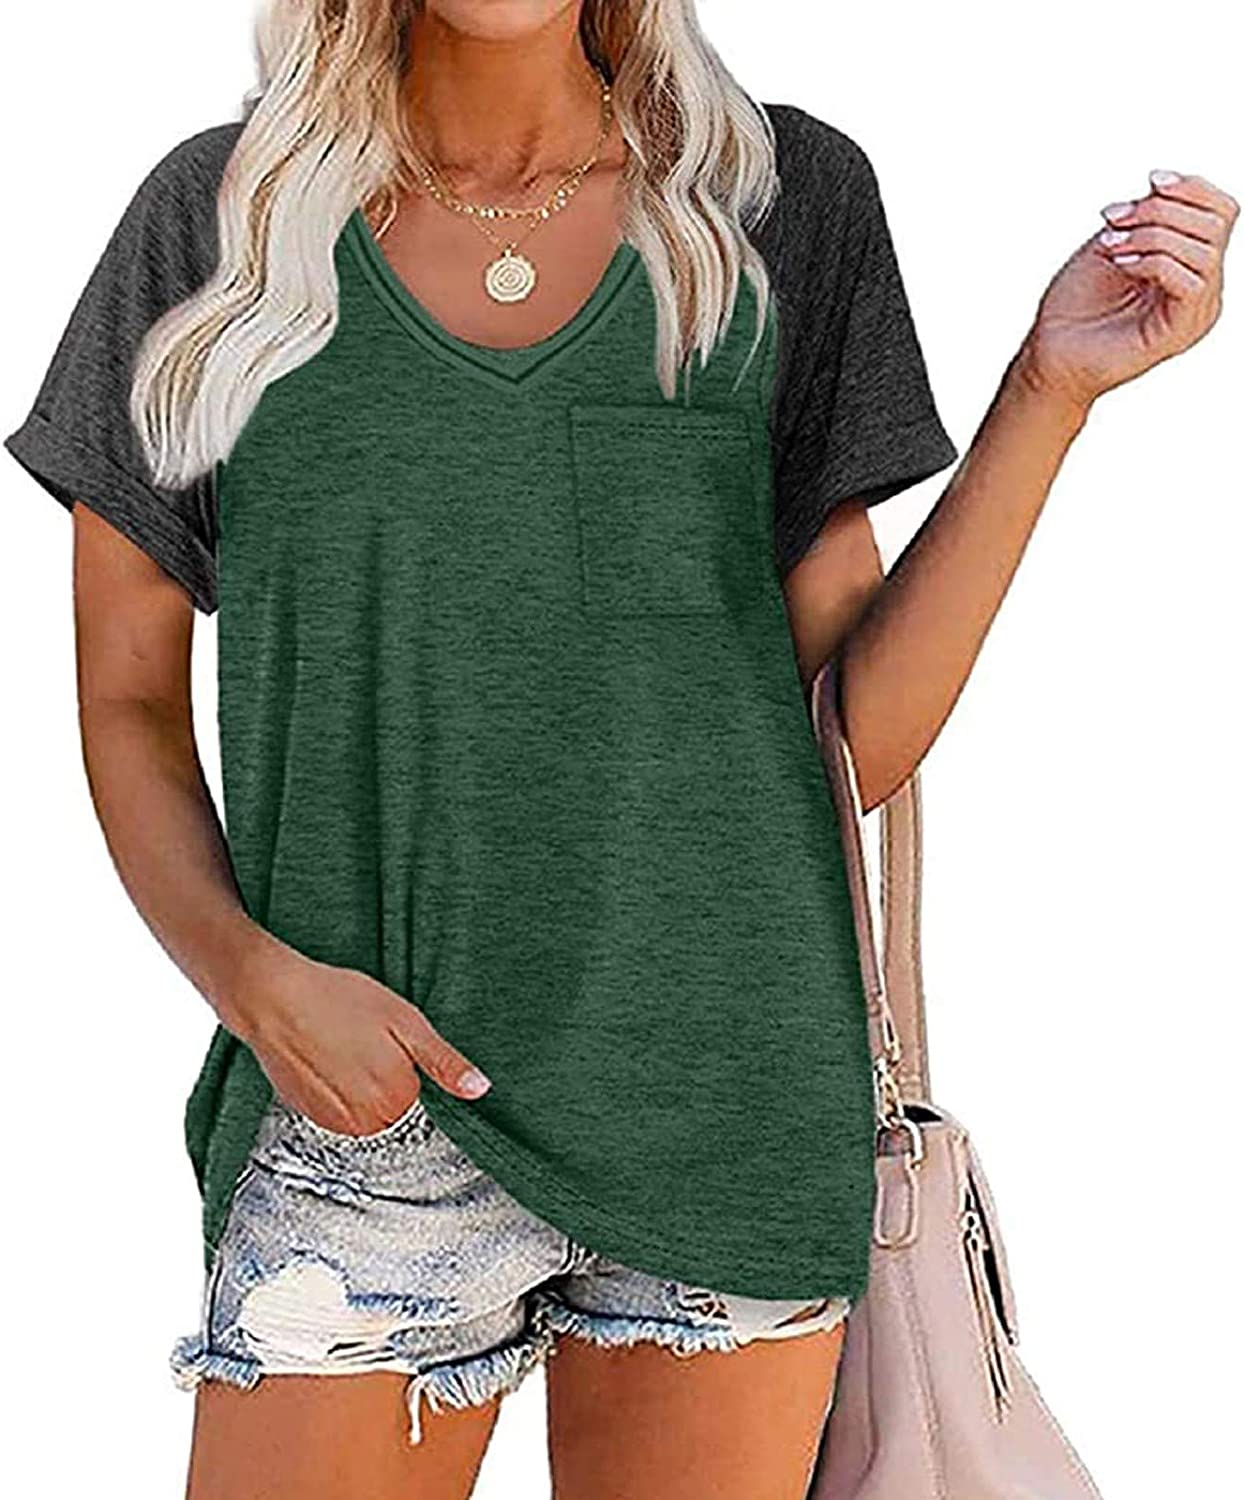 XUEbing Womens Classic Leisure Solid Color Short Sleeve Casual Loose Tops Round Neck Plain Workout Tops Loose Fit